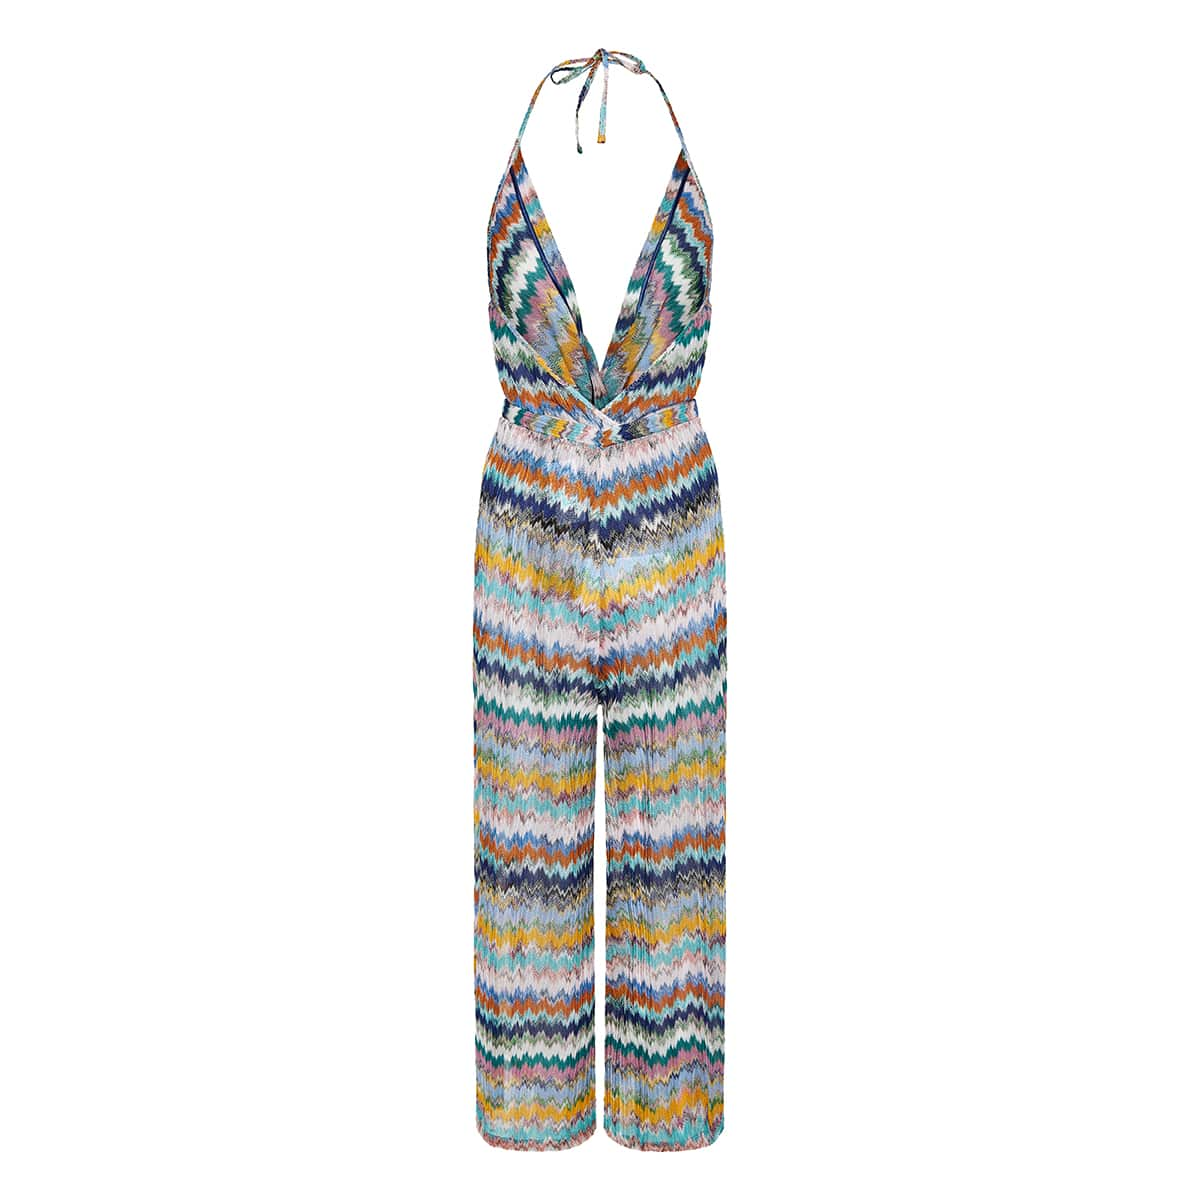 Chevron-knit halterneck jumpsuit